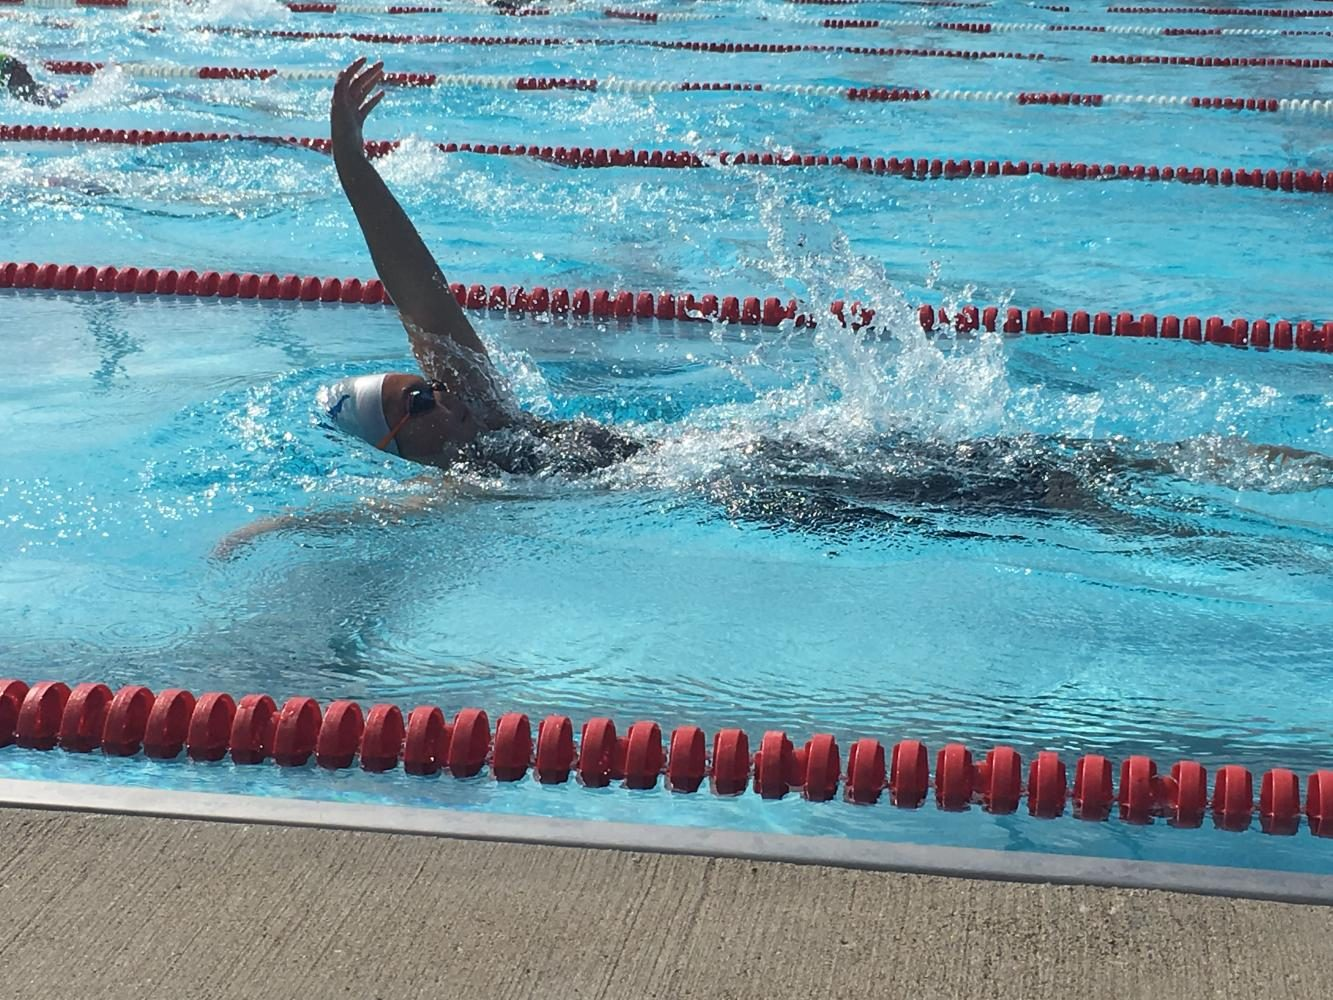 Ninth+grader+Jasmine+White+competes+in+the+backstroke+at+a+swim+meet.+White+has+been+swimming+since+first+grade+and+intends+to+continue+competing+in+college.+%22I%27m+still+too+young+to+apply+%5Bto+college%5D%2C+but+I%27m+already+looking+at+a+lot+of+different+schools+with+great+swimming+programs%2C%22+she+said.+